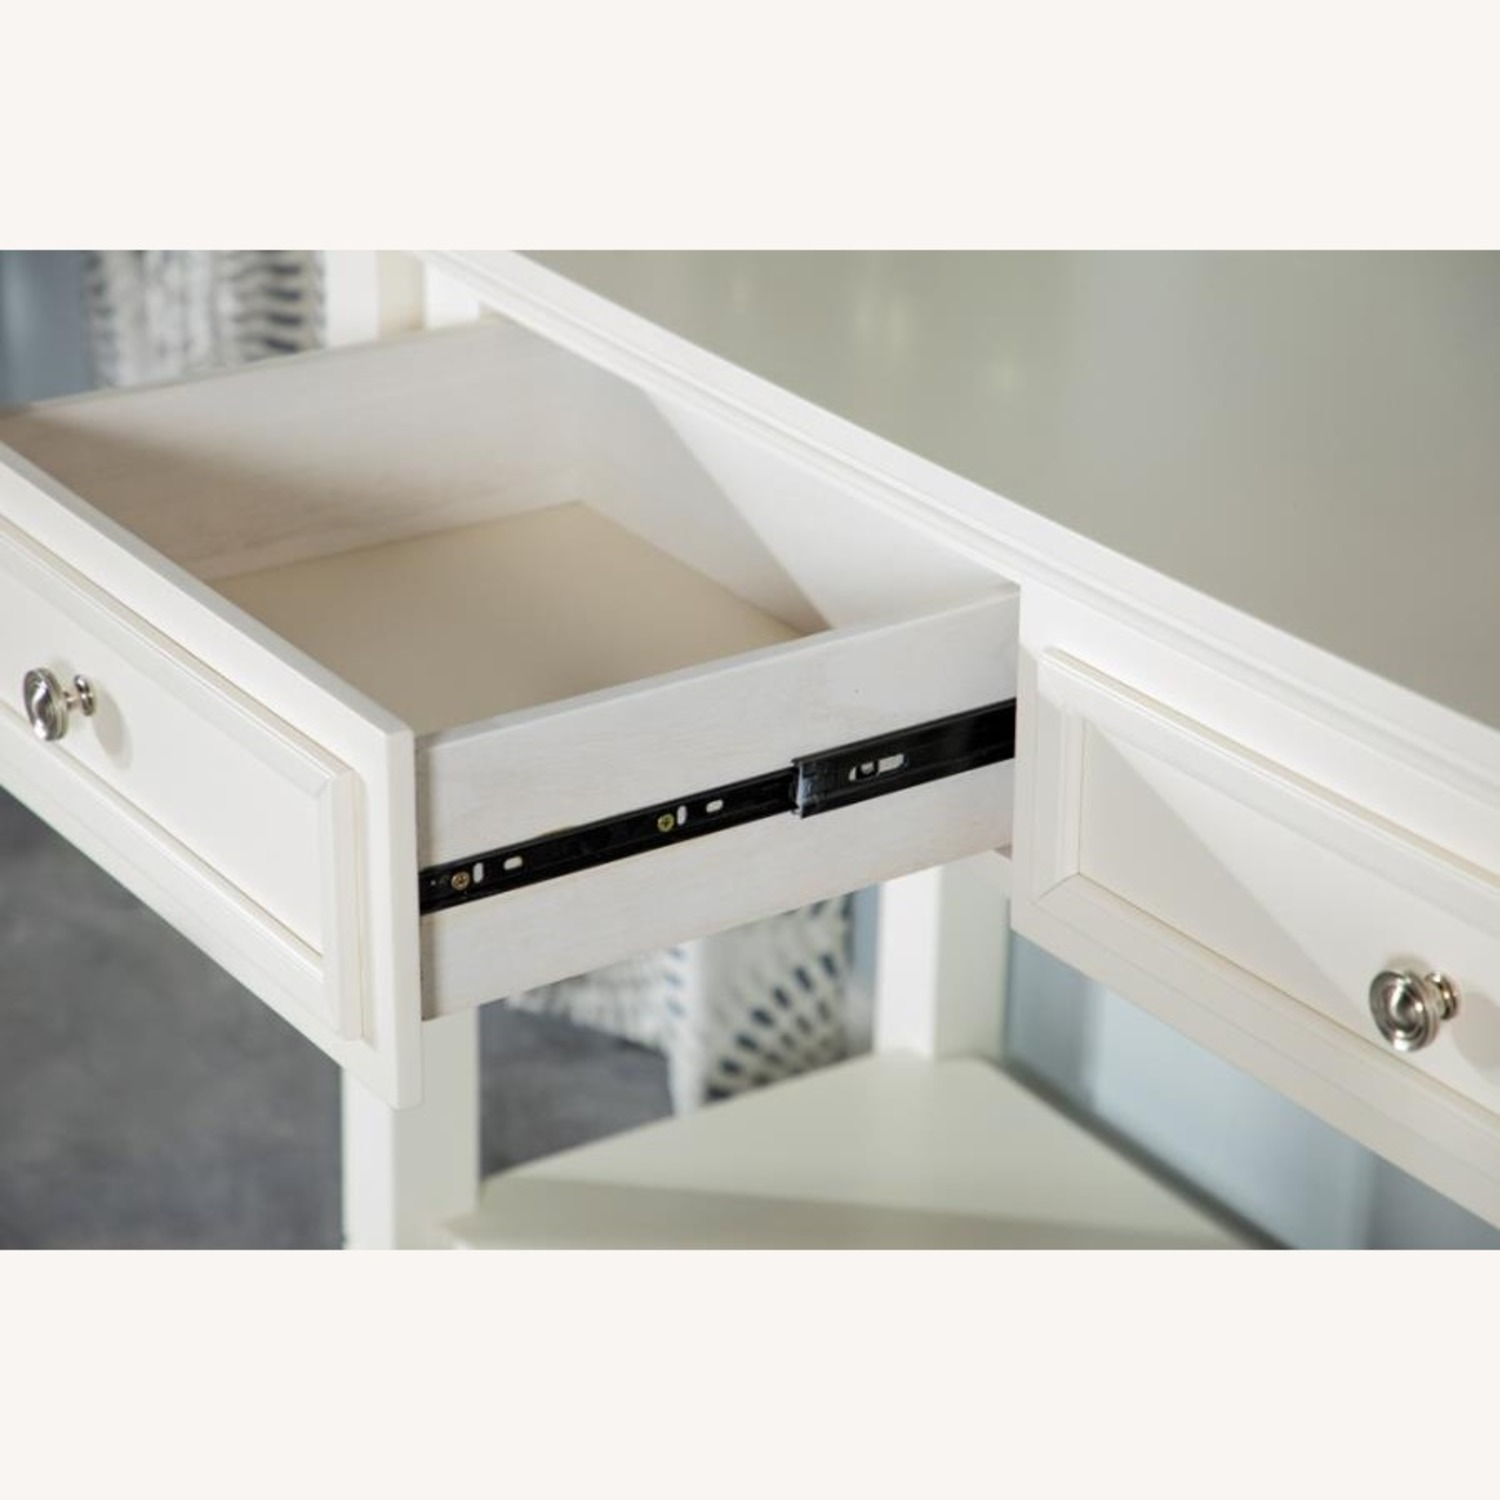 Sofa Table In White/Brushed Nickel - image-1